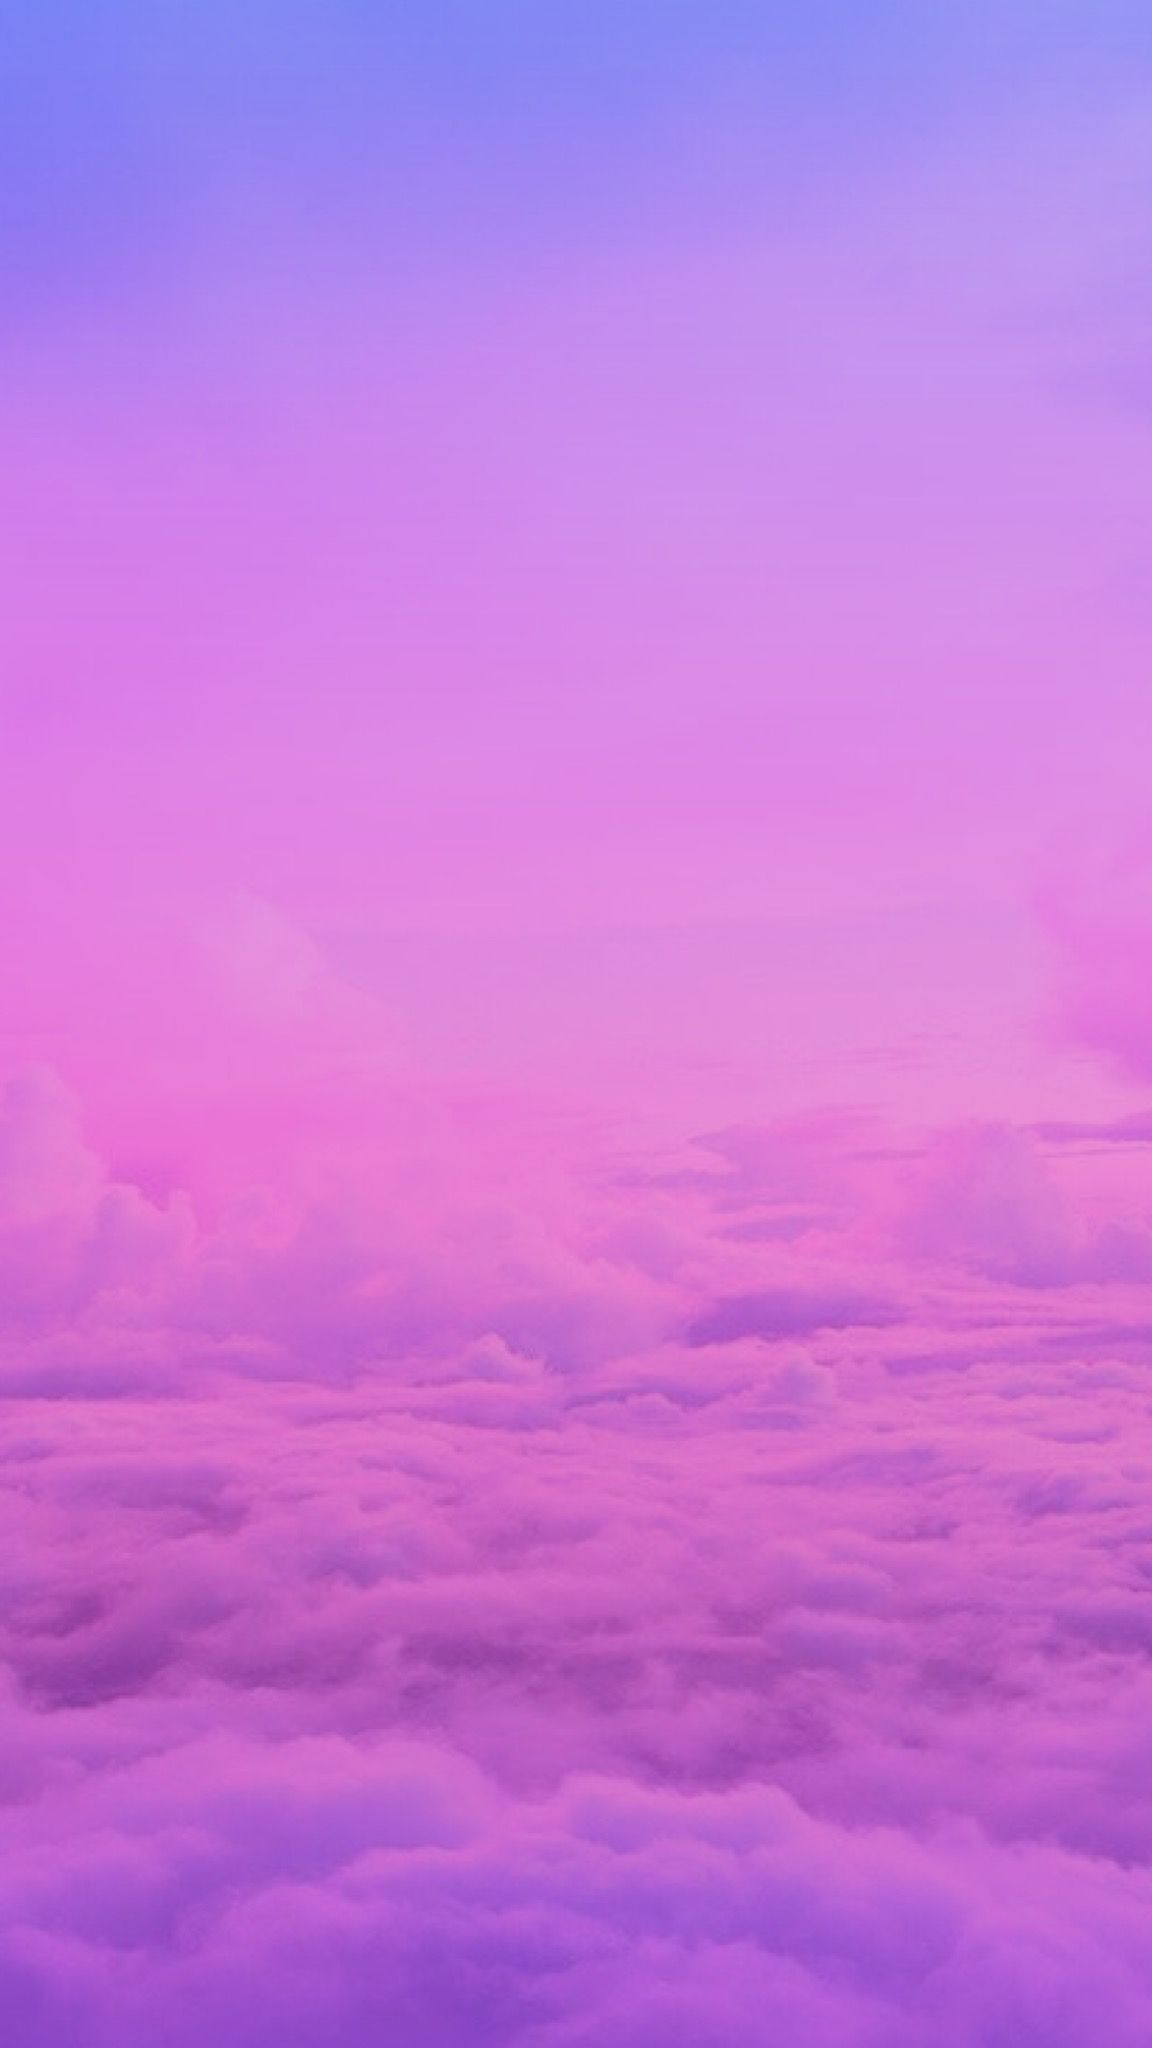 71 Purple Ombre Wallpapers On Wallpaperplay Purple Ombre Wallpaper Purple Wallpaper Pink Ombre Wallpaper